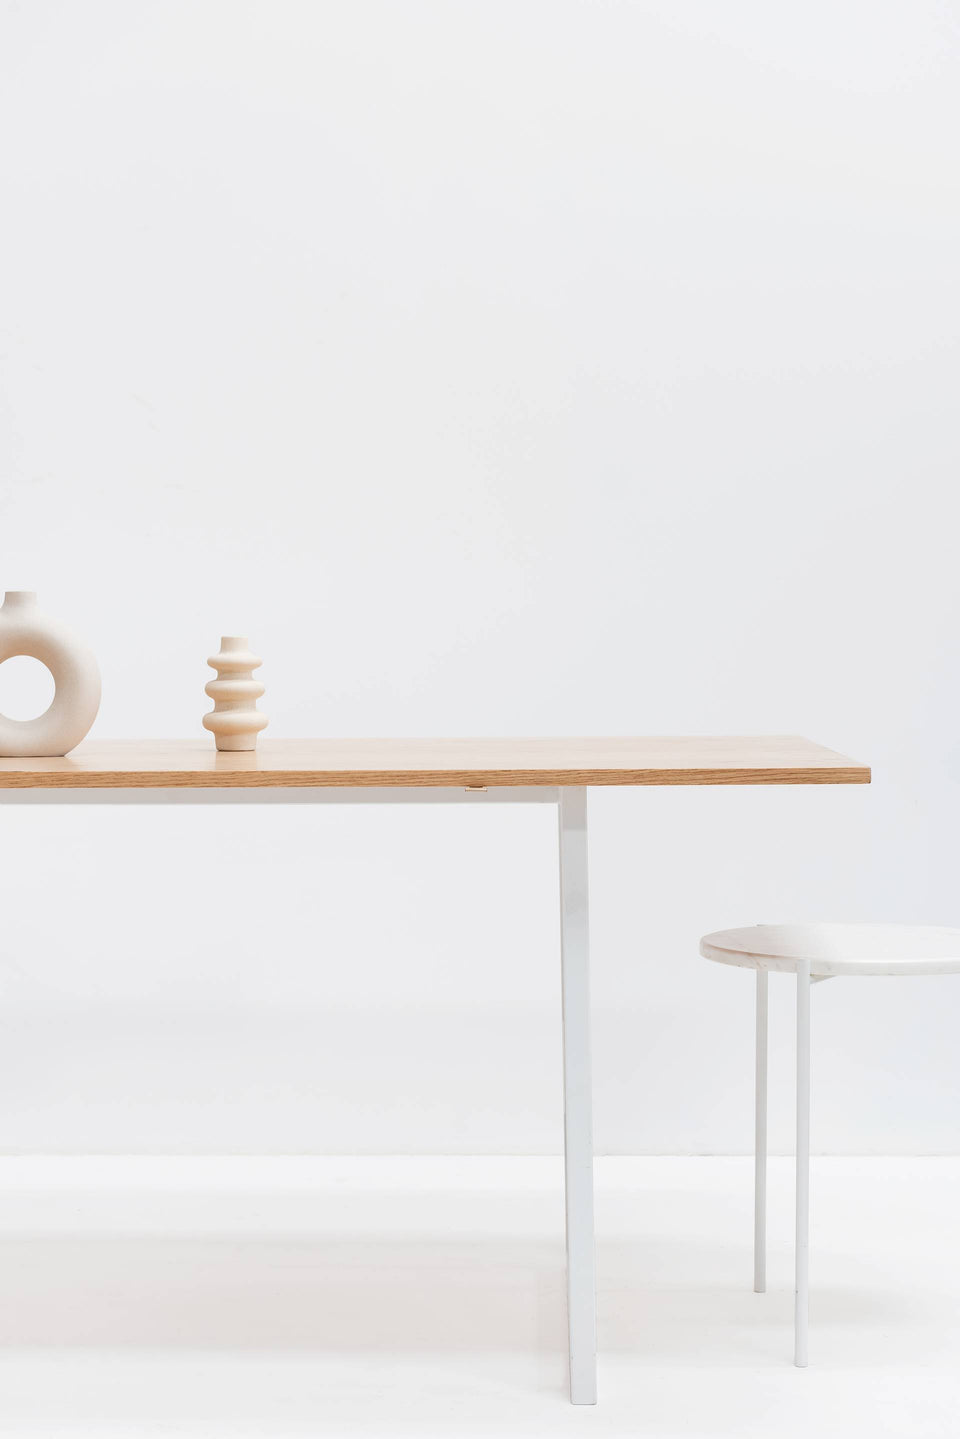 Small Desk, Wooden Top, White Legs Decoration